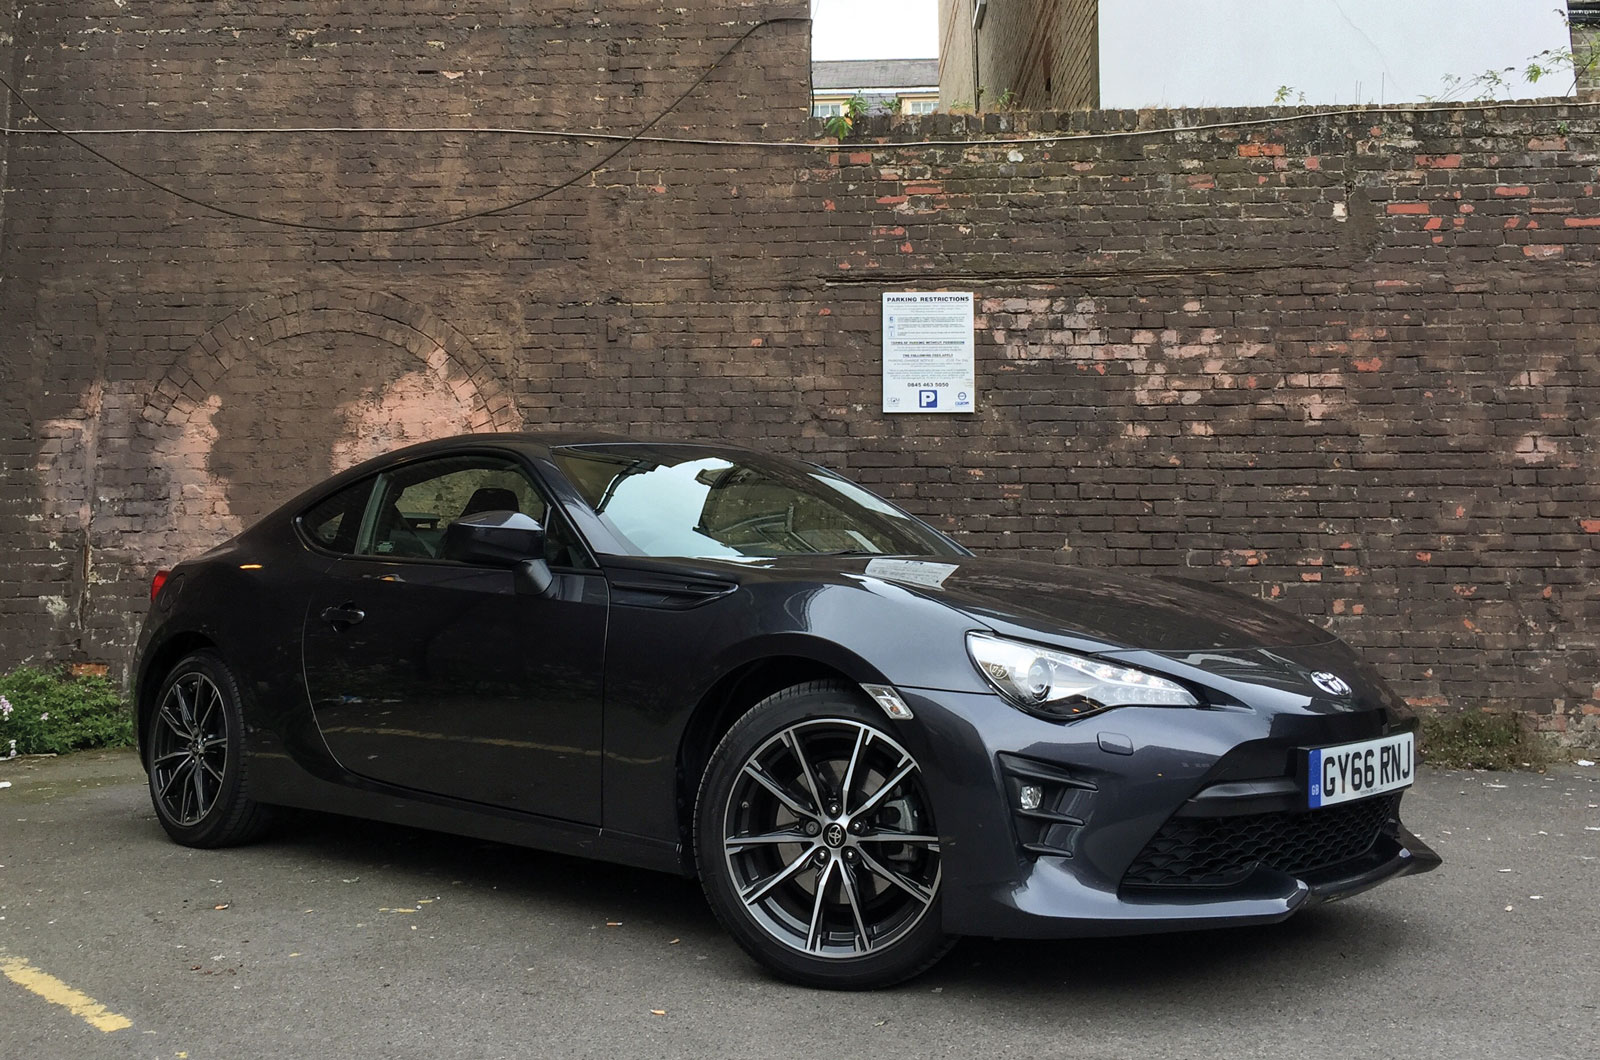 Subaru Brz Long Term Test Review Six Months With A Cut Price Sports Seat Ibiza Central Locking Wiring Diagram Spin Off Right Well Erm No My Proof Comes From Week Stint In Gt86 Pic Below Which Proved To Me That The Brzs Brother Another